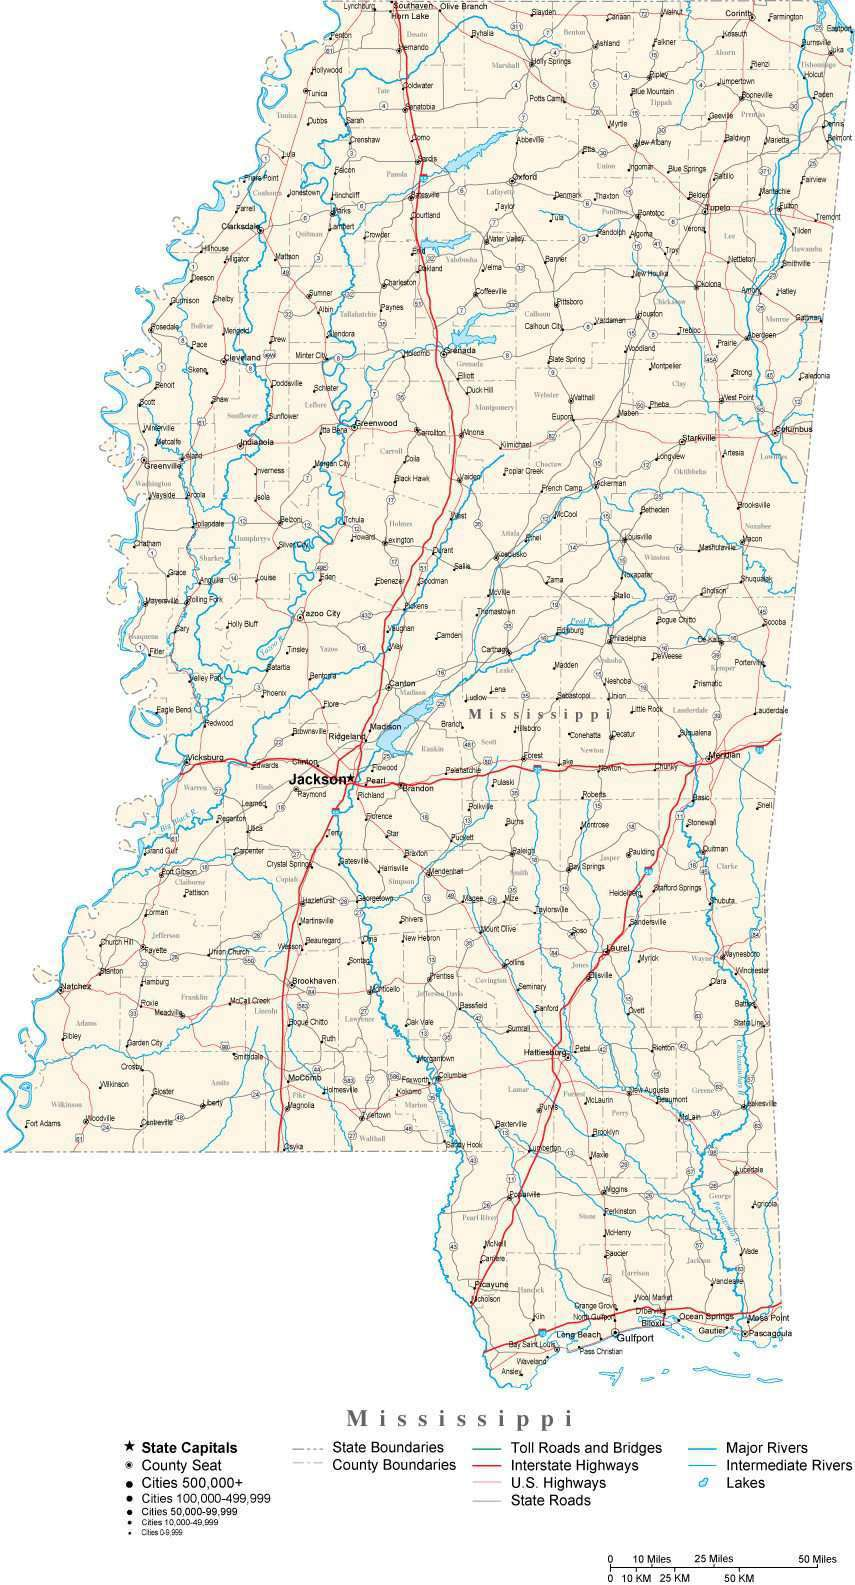 Mississippi Map - Cut Out Style - with Capital, County Boundaries, on weather map mississippi, map of romania, map of japan, map of united arab emirates, map of singapore, us map mississippi, map of netherlands, map of india, map of us territories, map of ireland, map of united kingdom, state flags mississippi, map of australia, road maps mississippi, google maps mississippi, united states map mississippi, map of finland, map of austria, map of thailand, map of denmark,